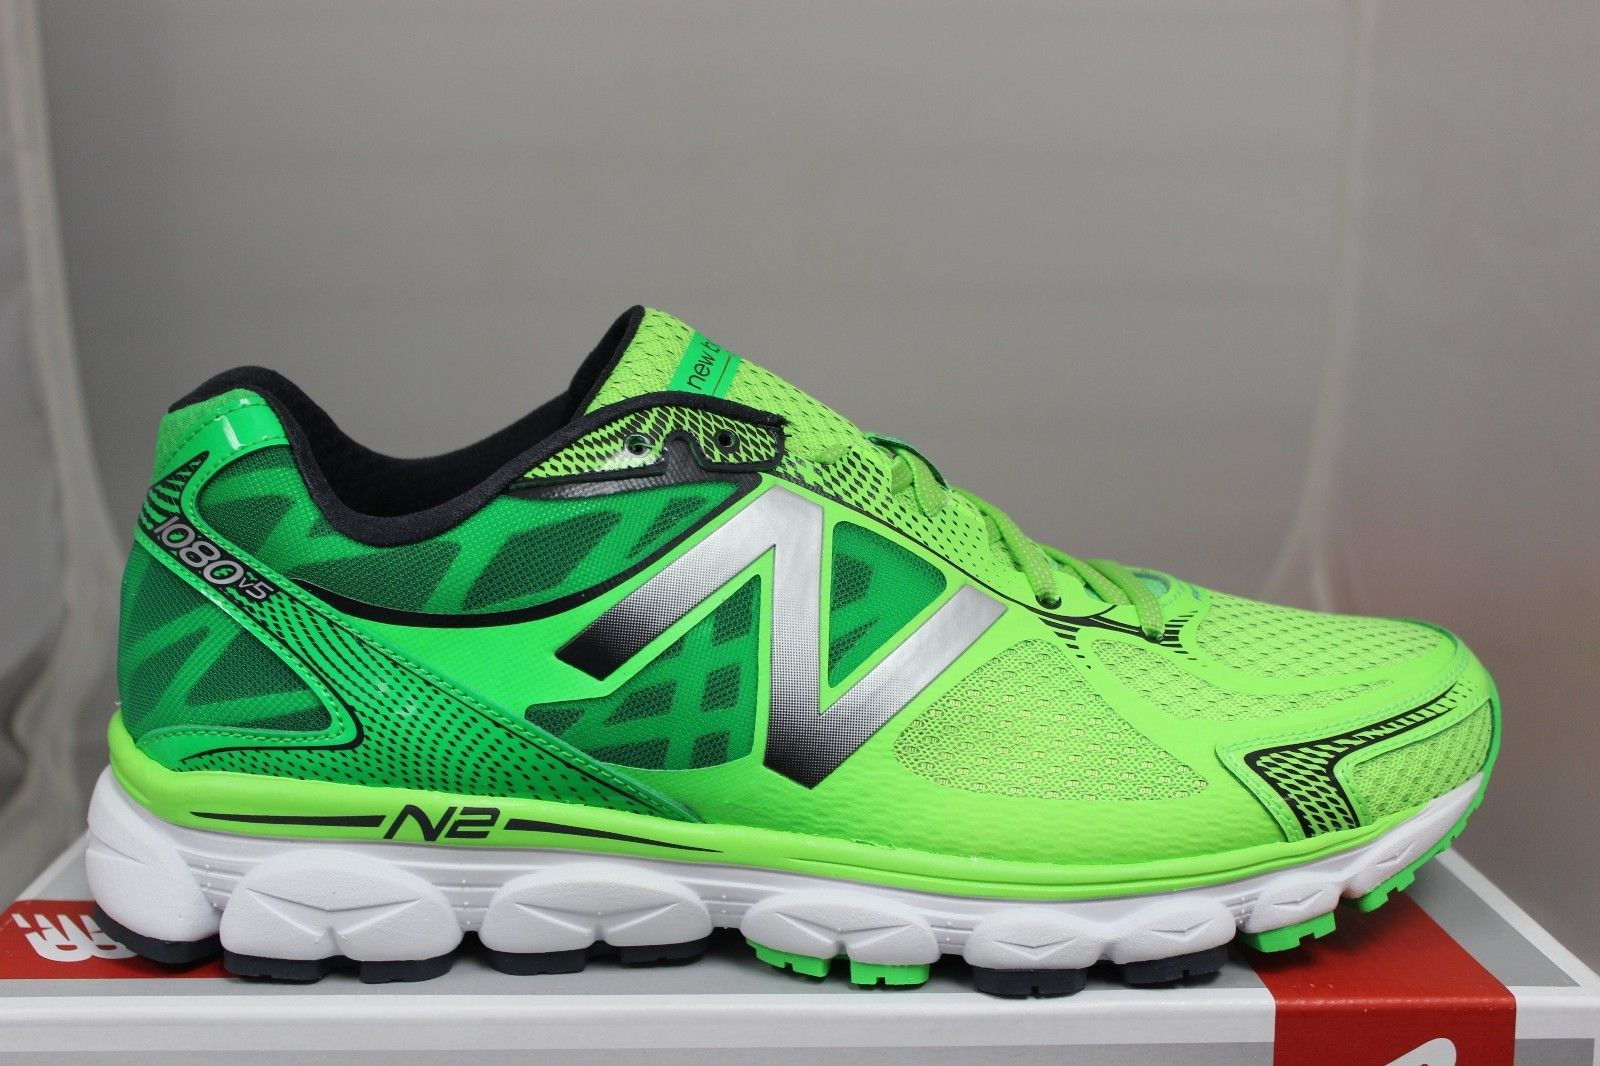 New Balance 2040 Moda casual